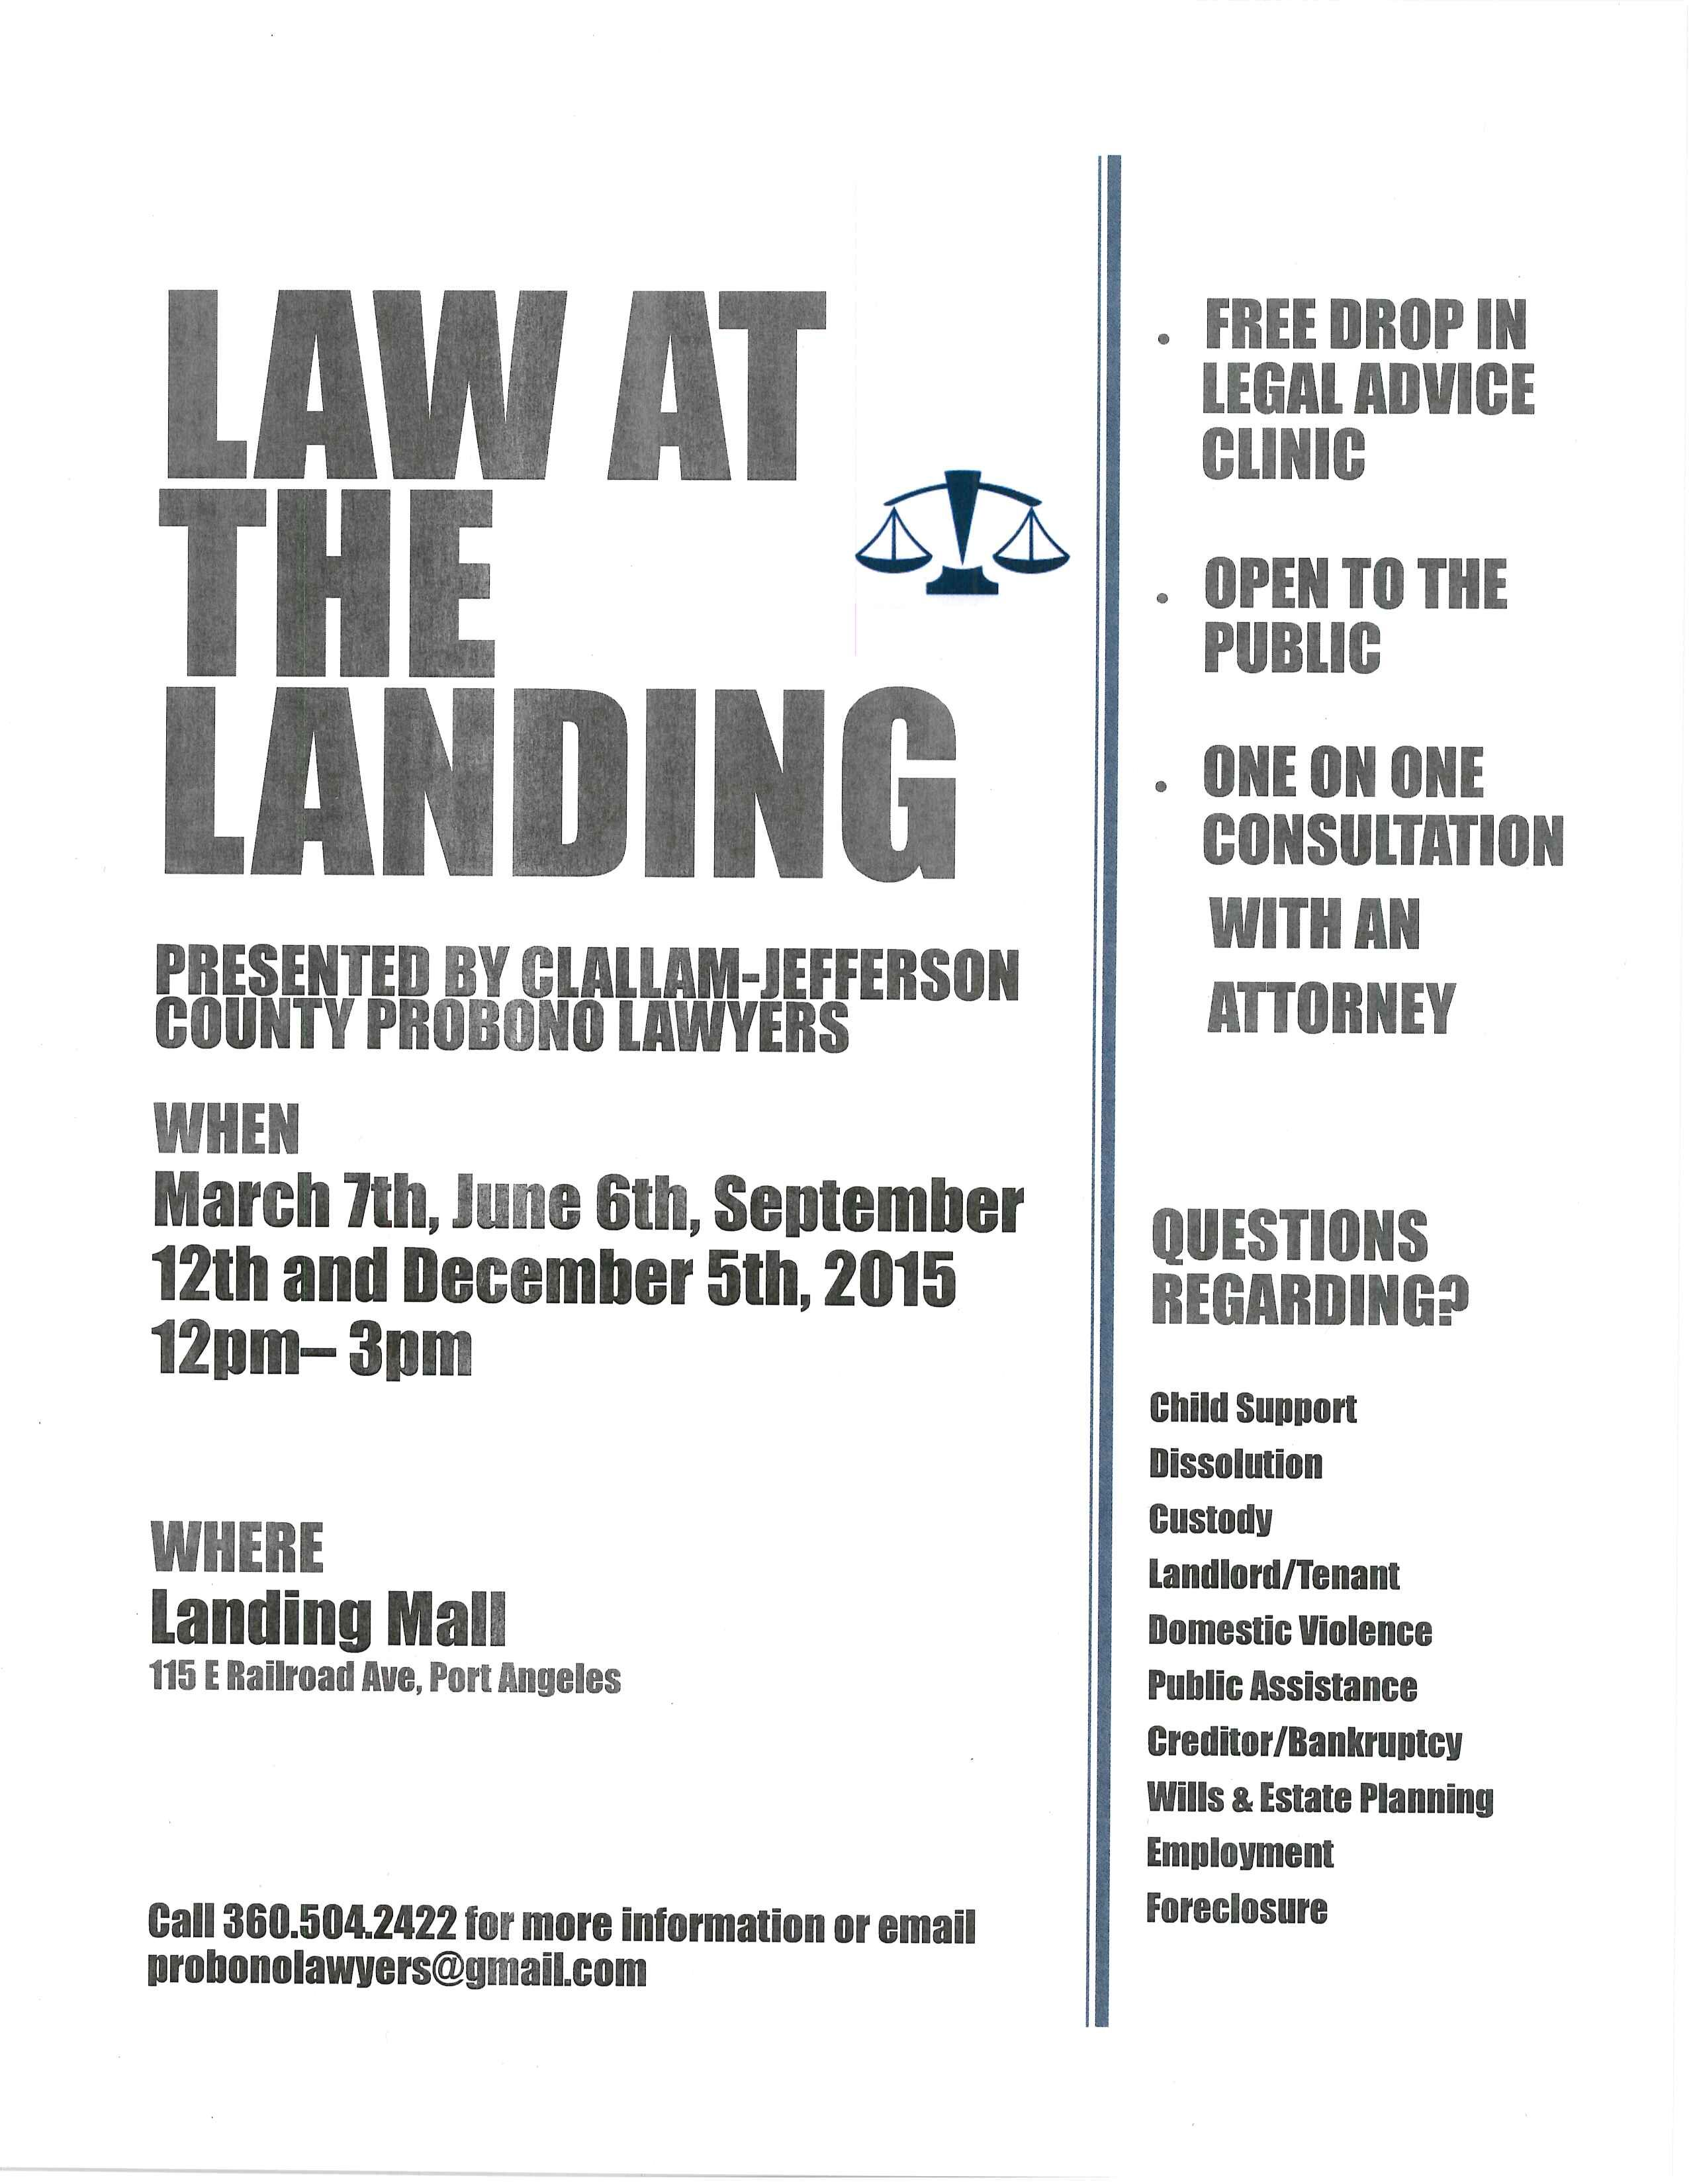 FREE drop in legal advice clinic, open to public with one